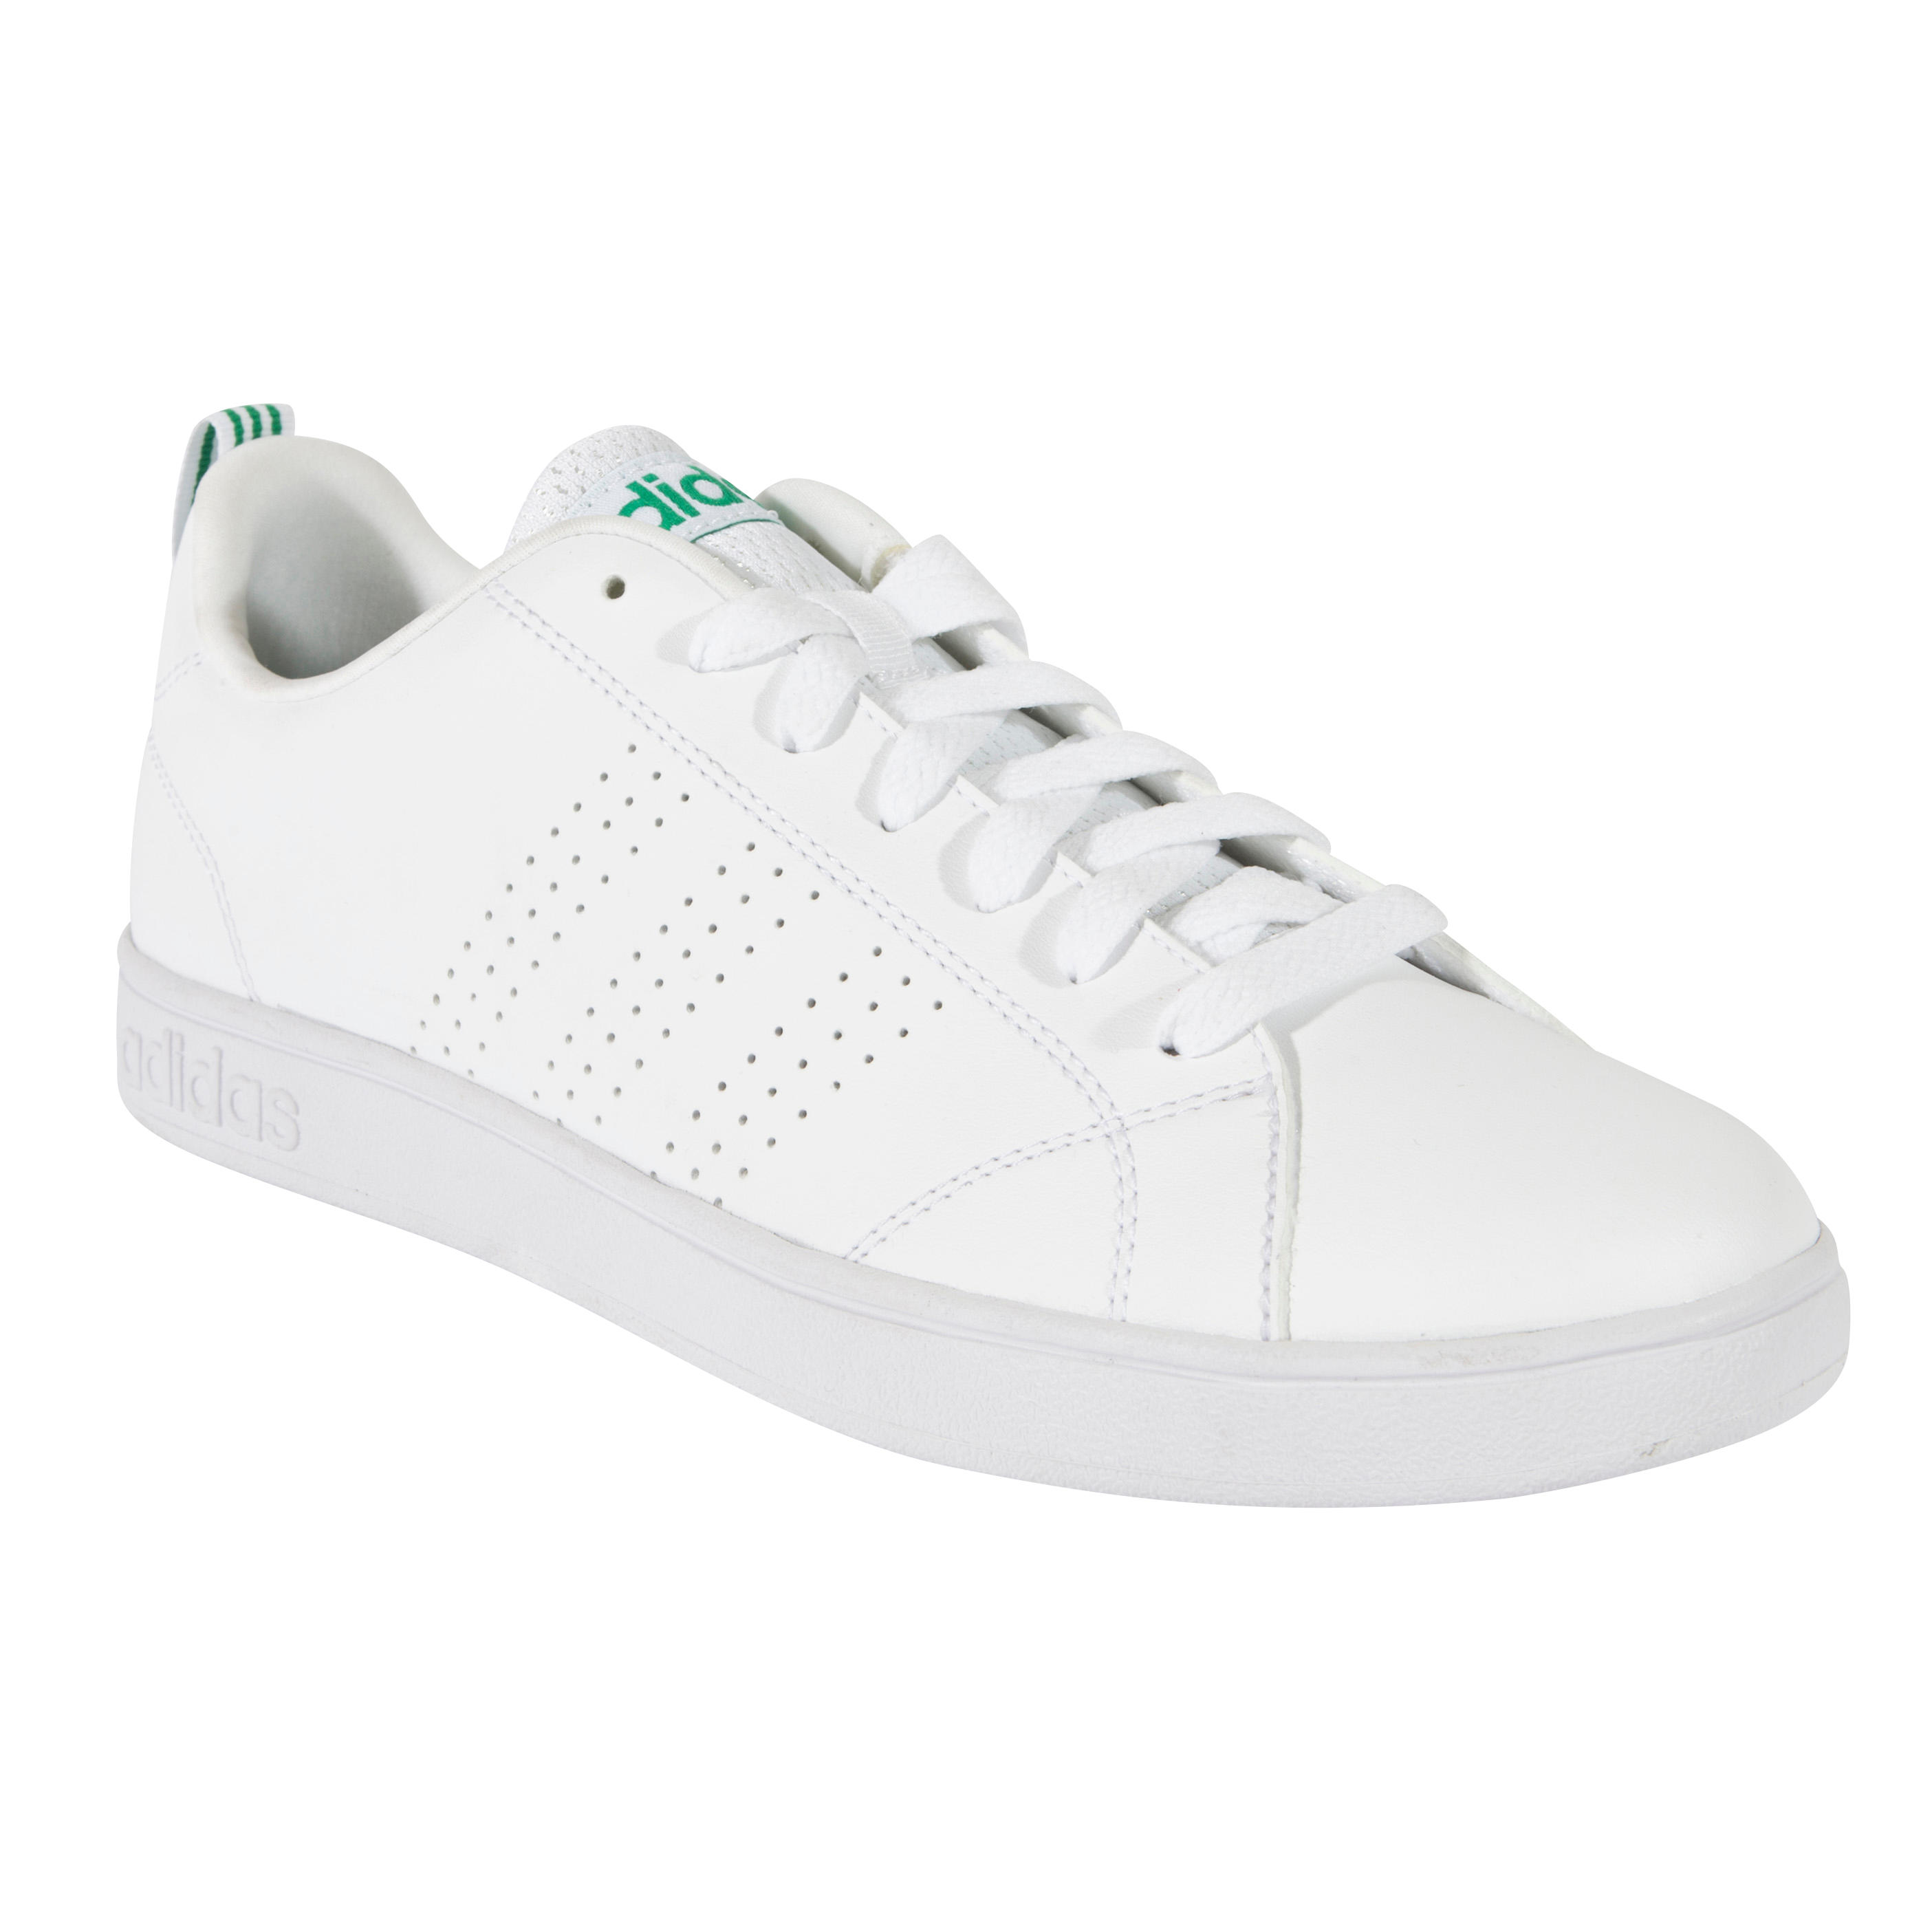 Tennisschoenen heren Advantage Clean Wit